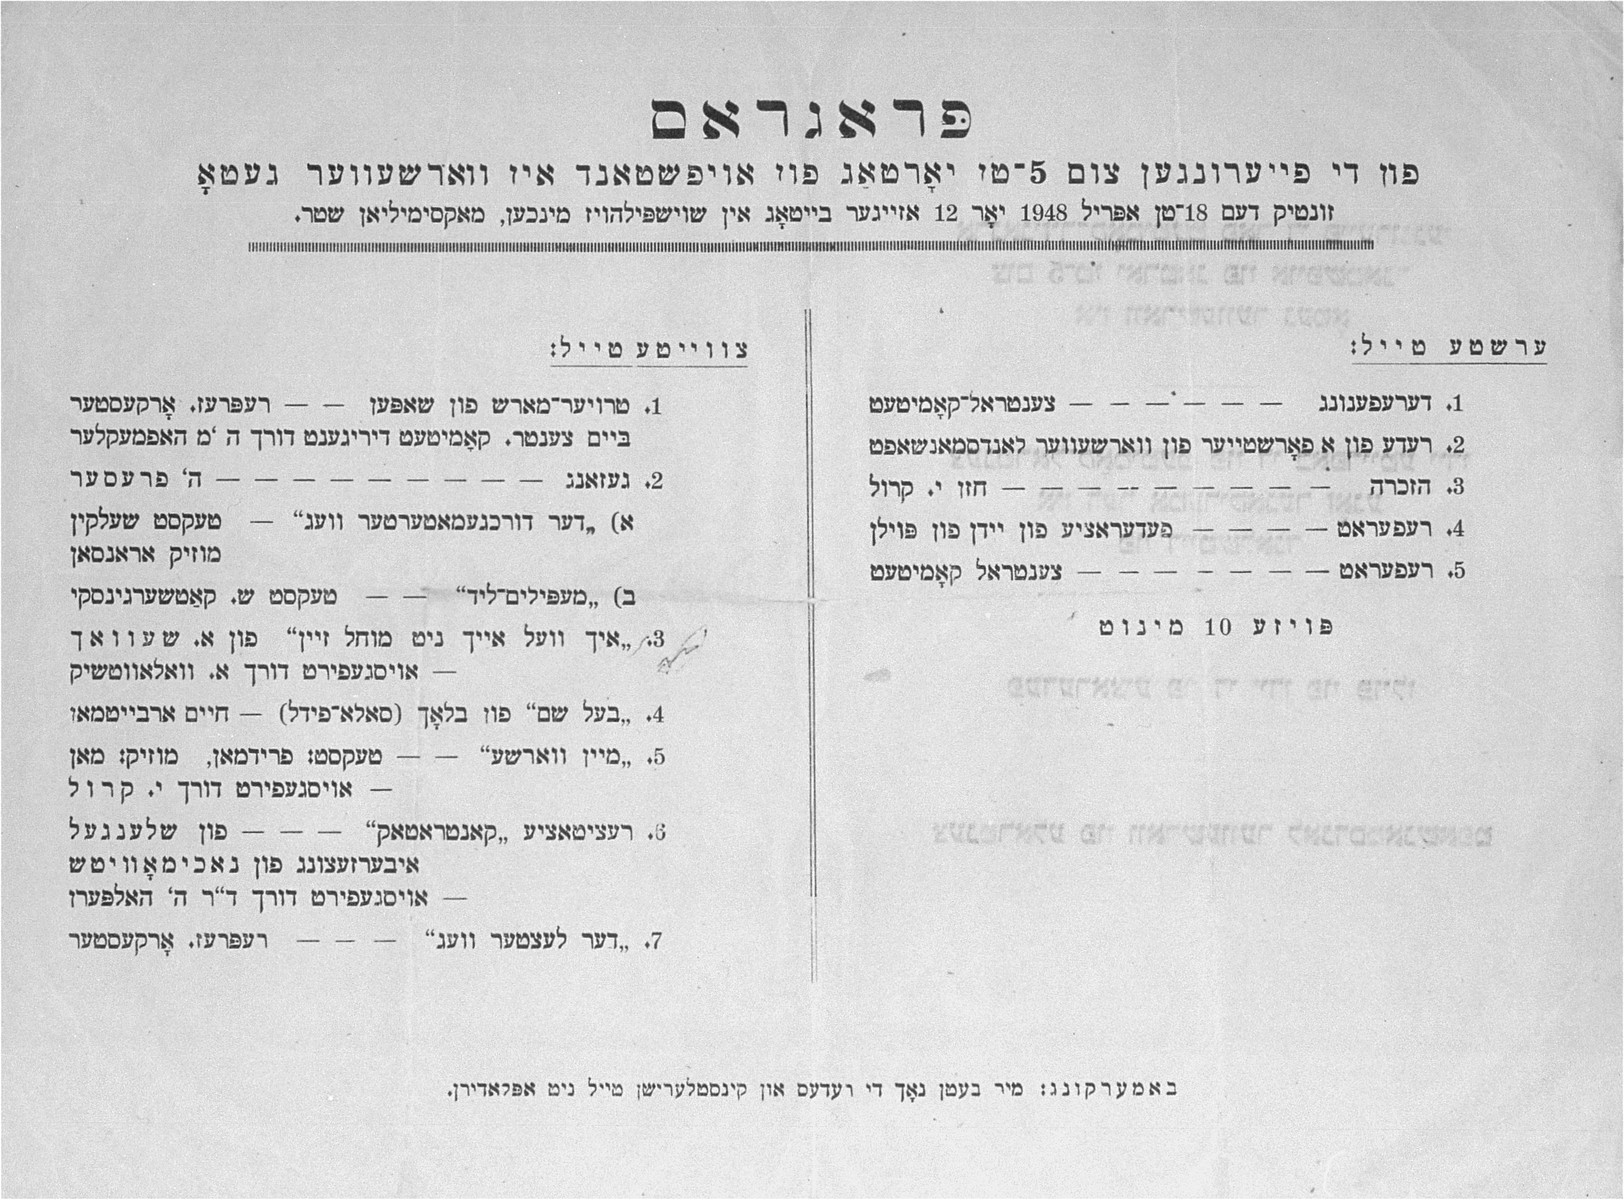 Program (inside page) for the commemoration of the fifth anniversary of the Warsaw ghetto uprising, organized by the Central Committee of the Liberated Jews in the American Zone of Germany.